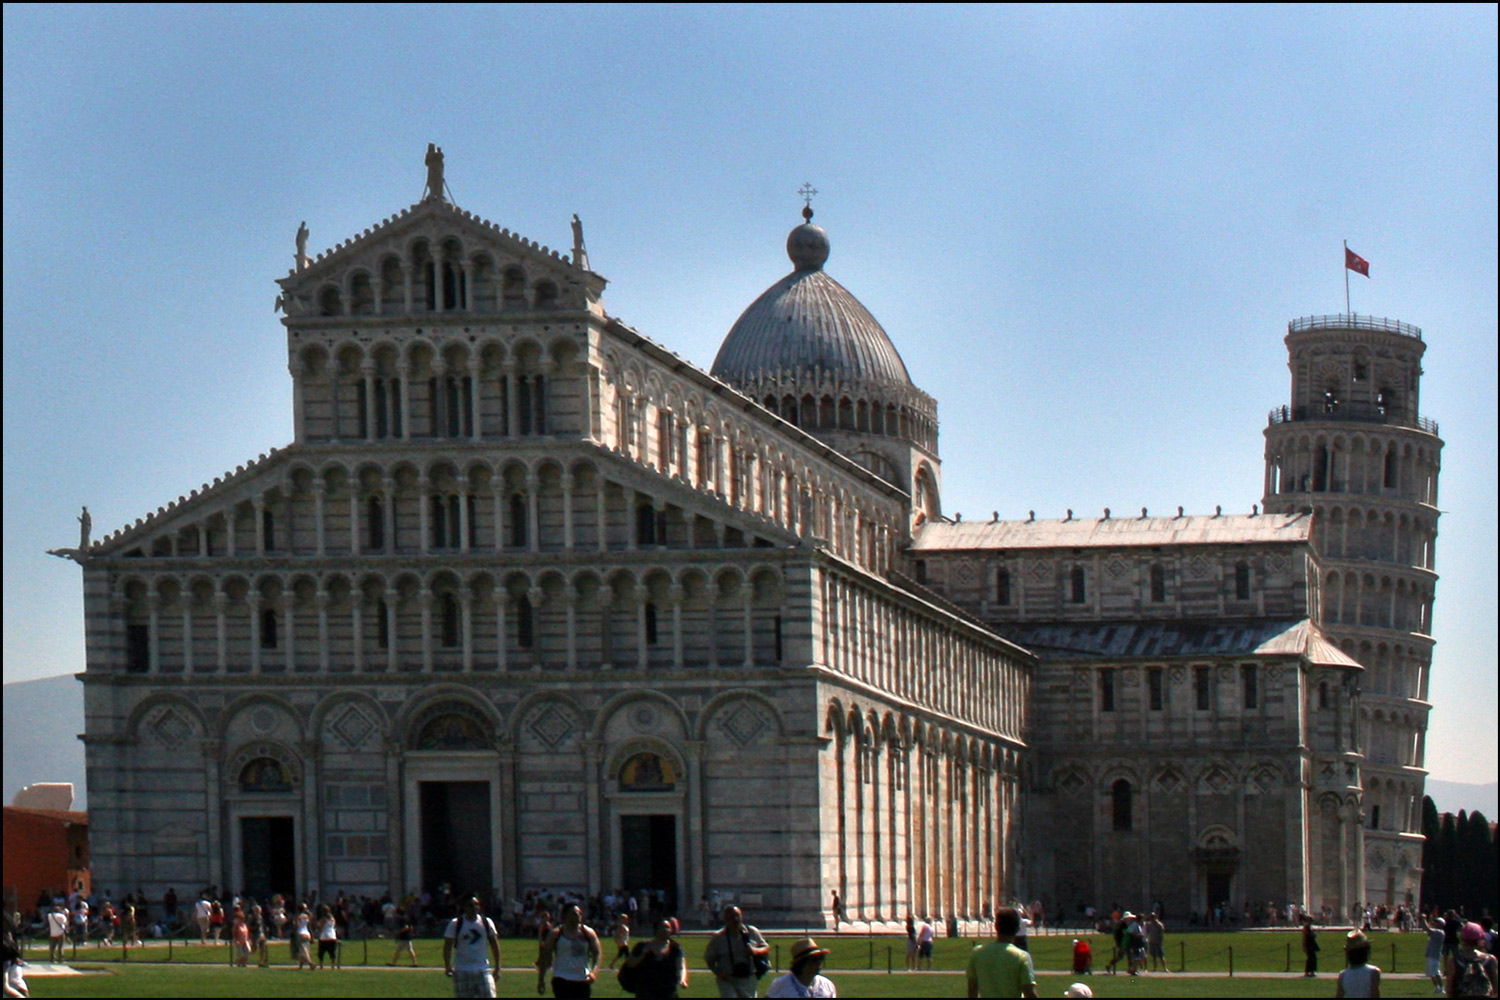 The Pisa Cathedral